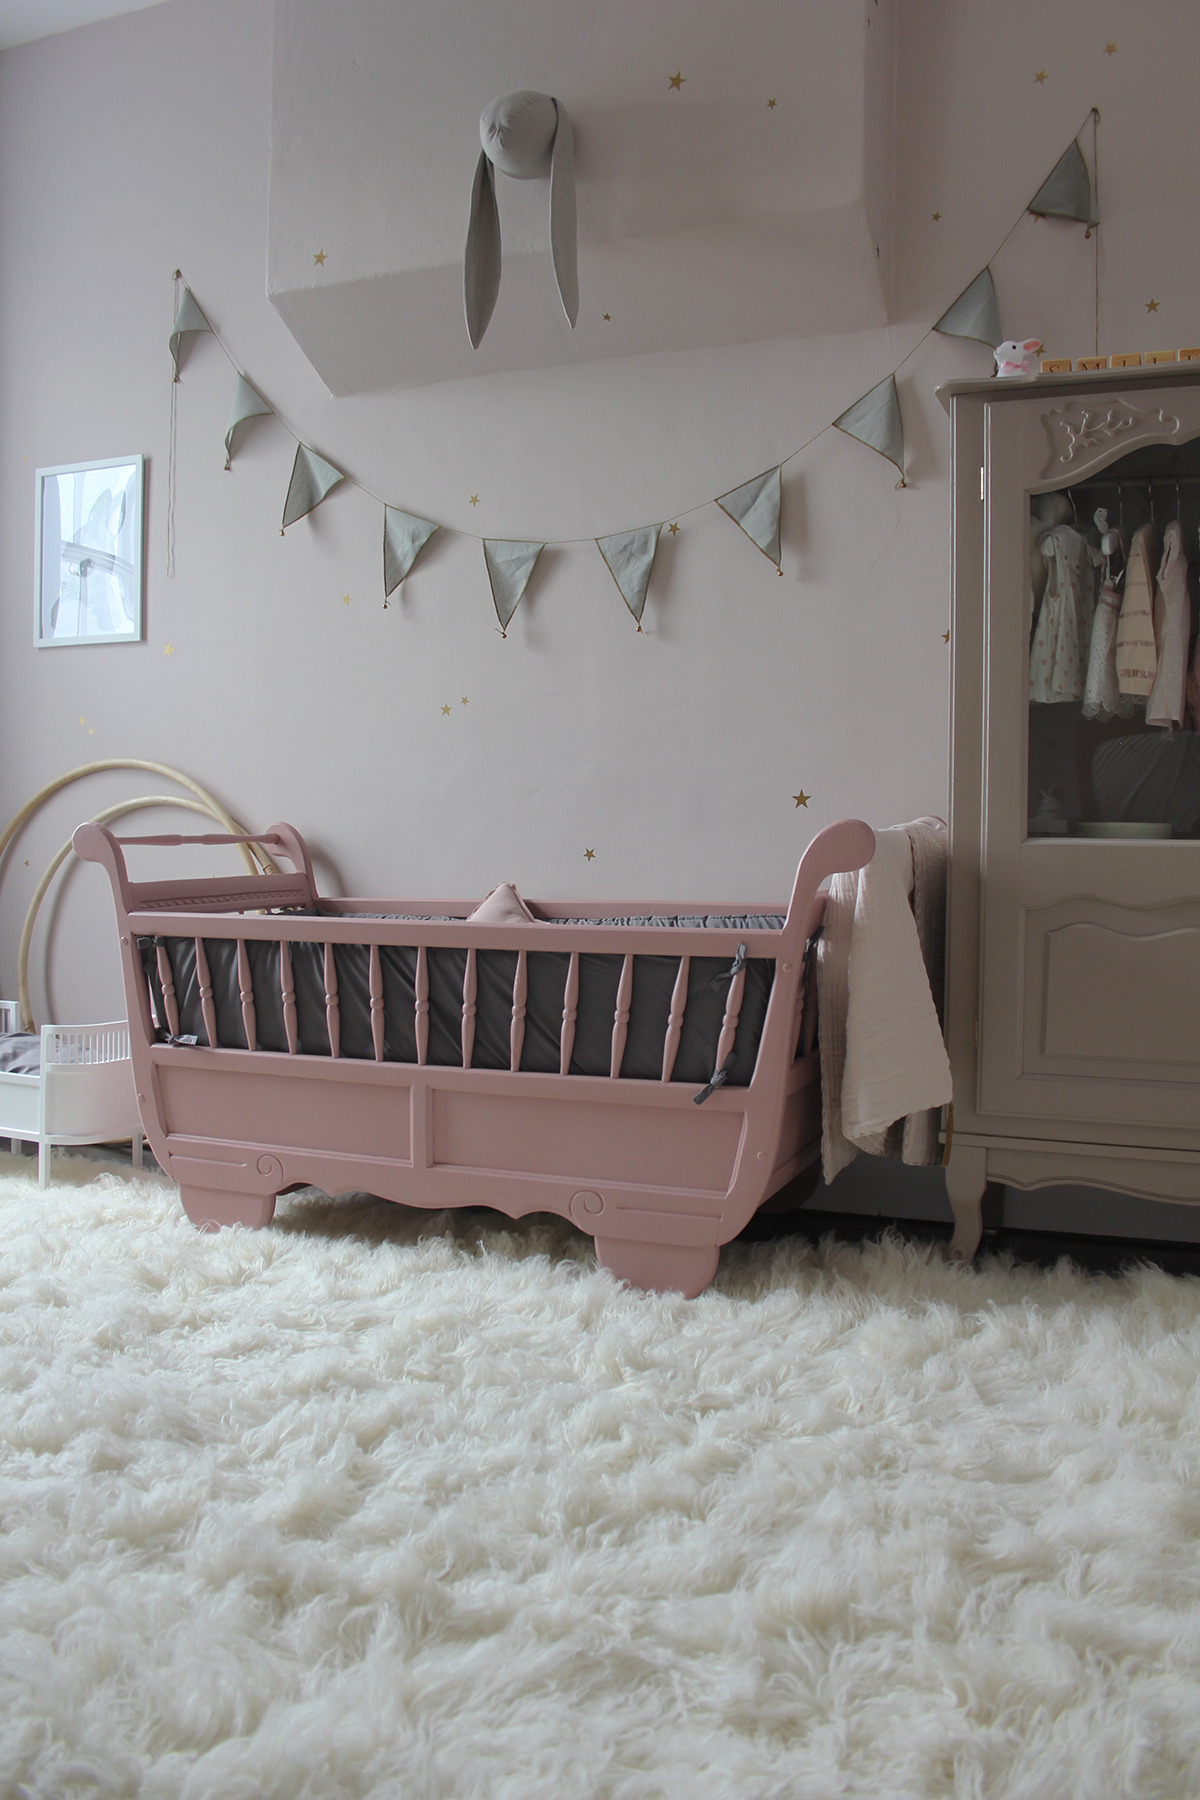 Preciously Me blog : One Room Challenge - Nursery Reveal